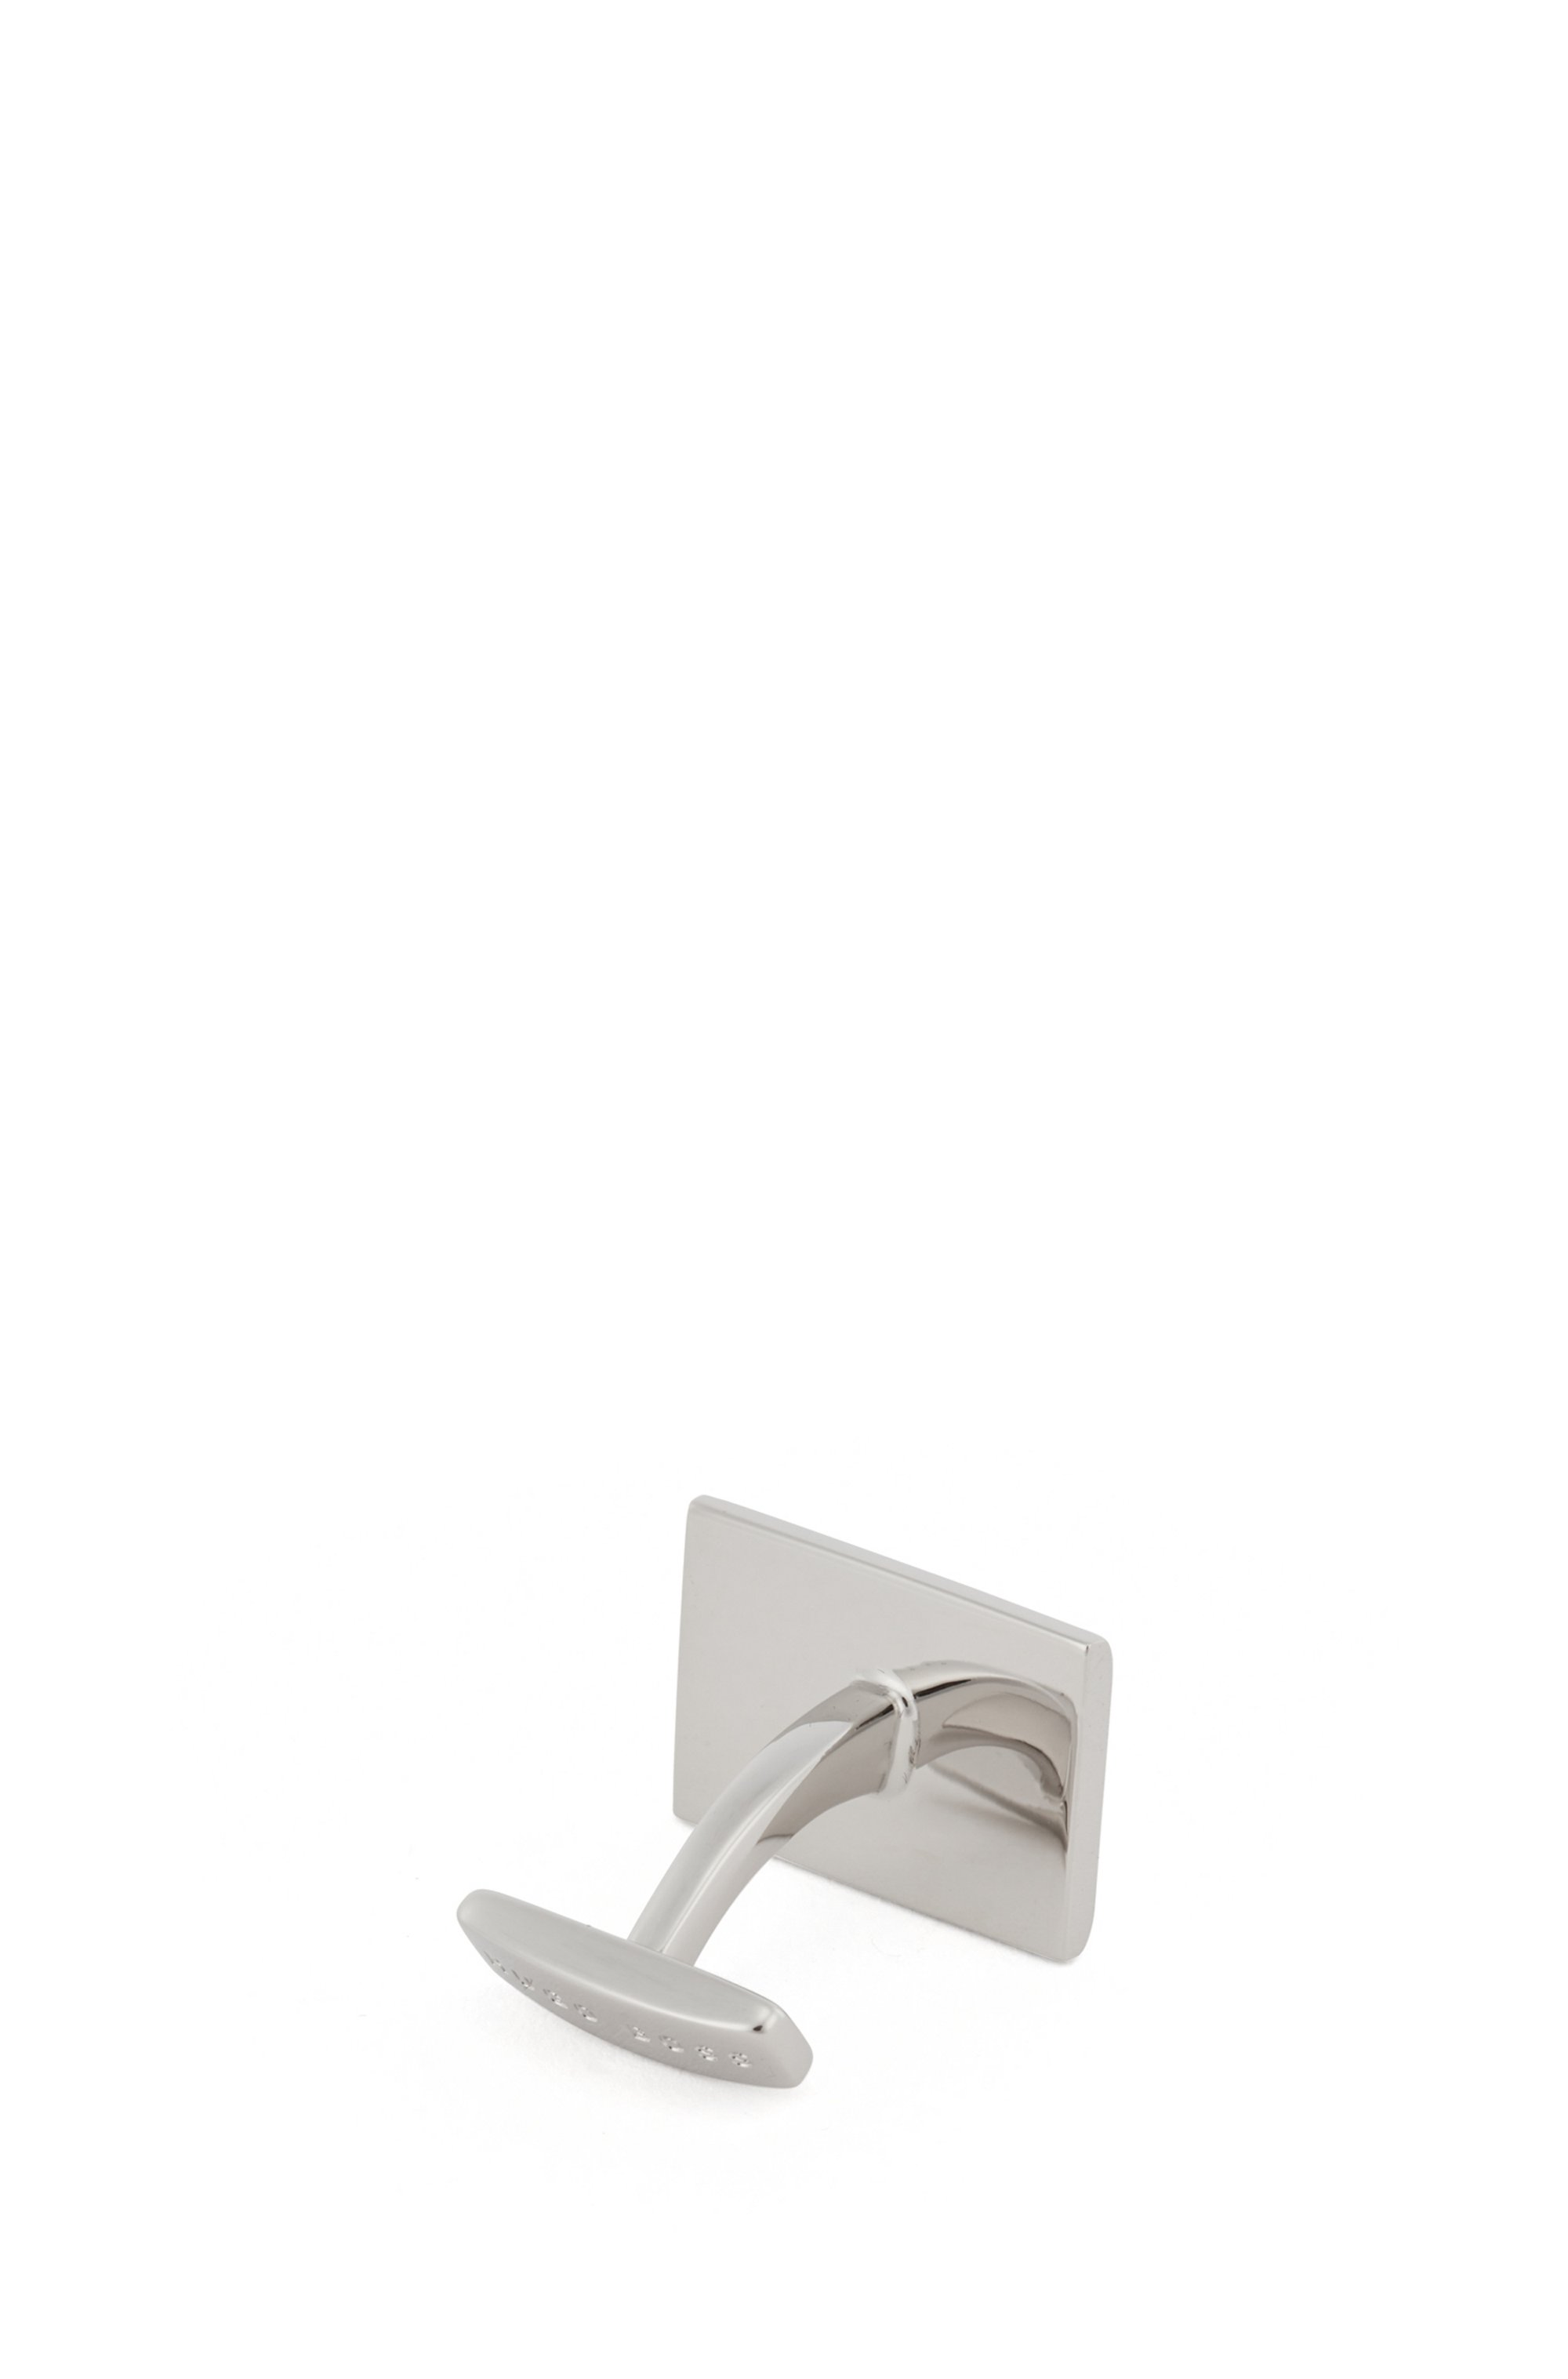 Rectangular cufflinks with faceted surface